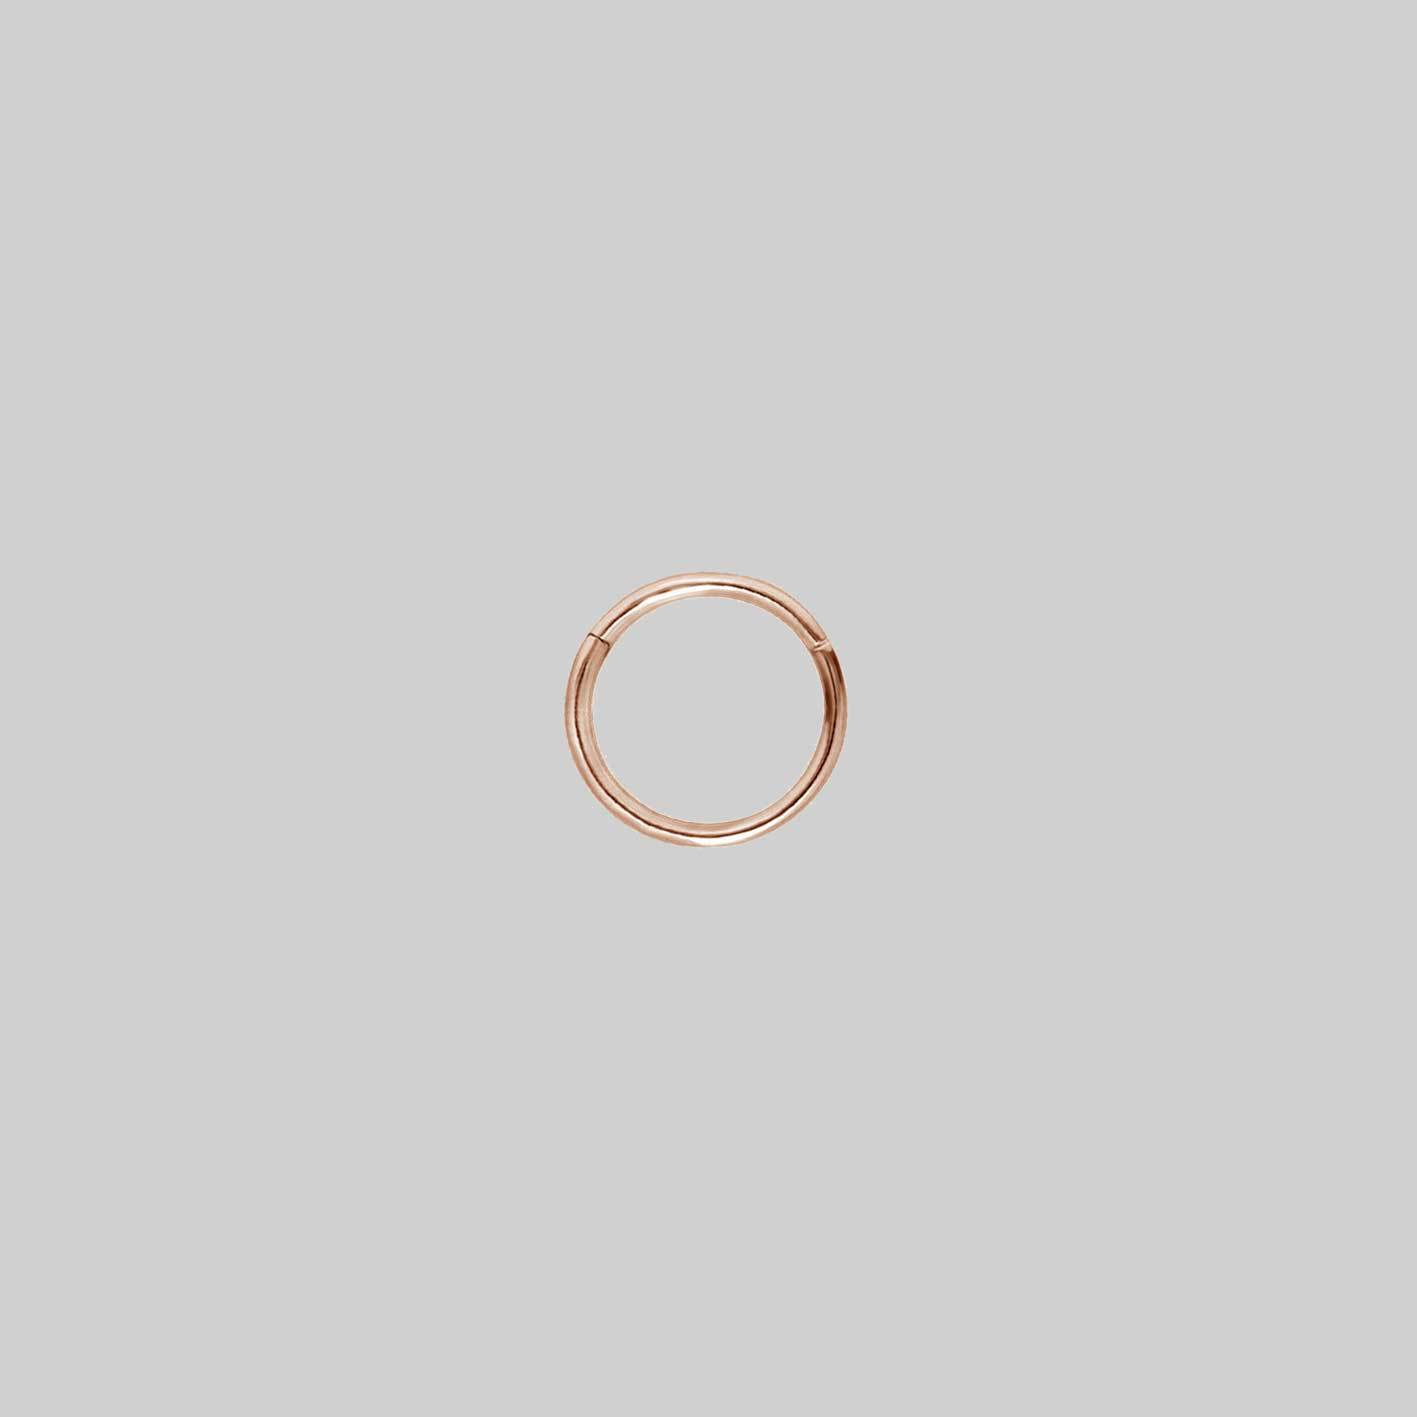 SANDY EXTRA MINI. Rose Gold Septum Clicker Ring